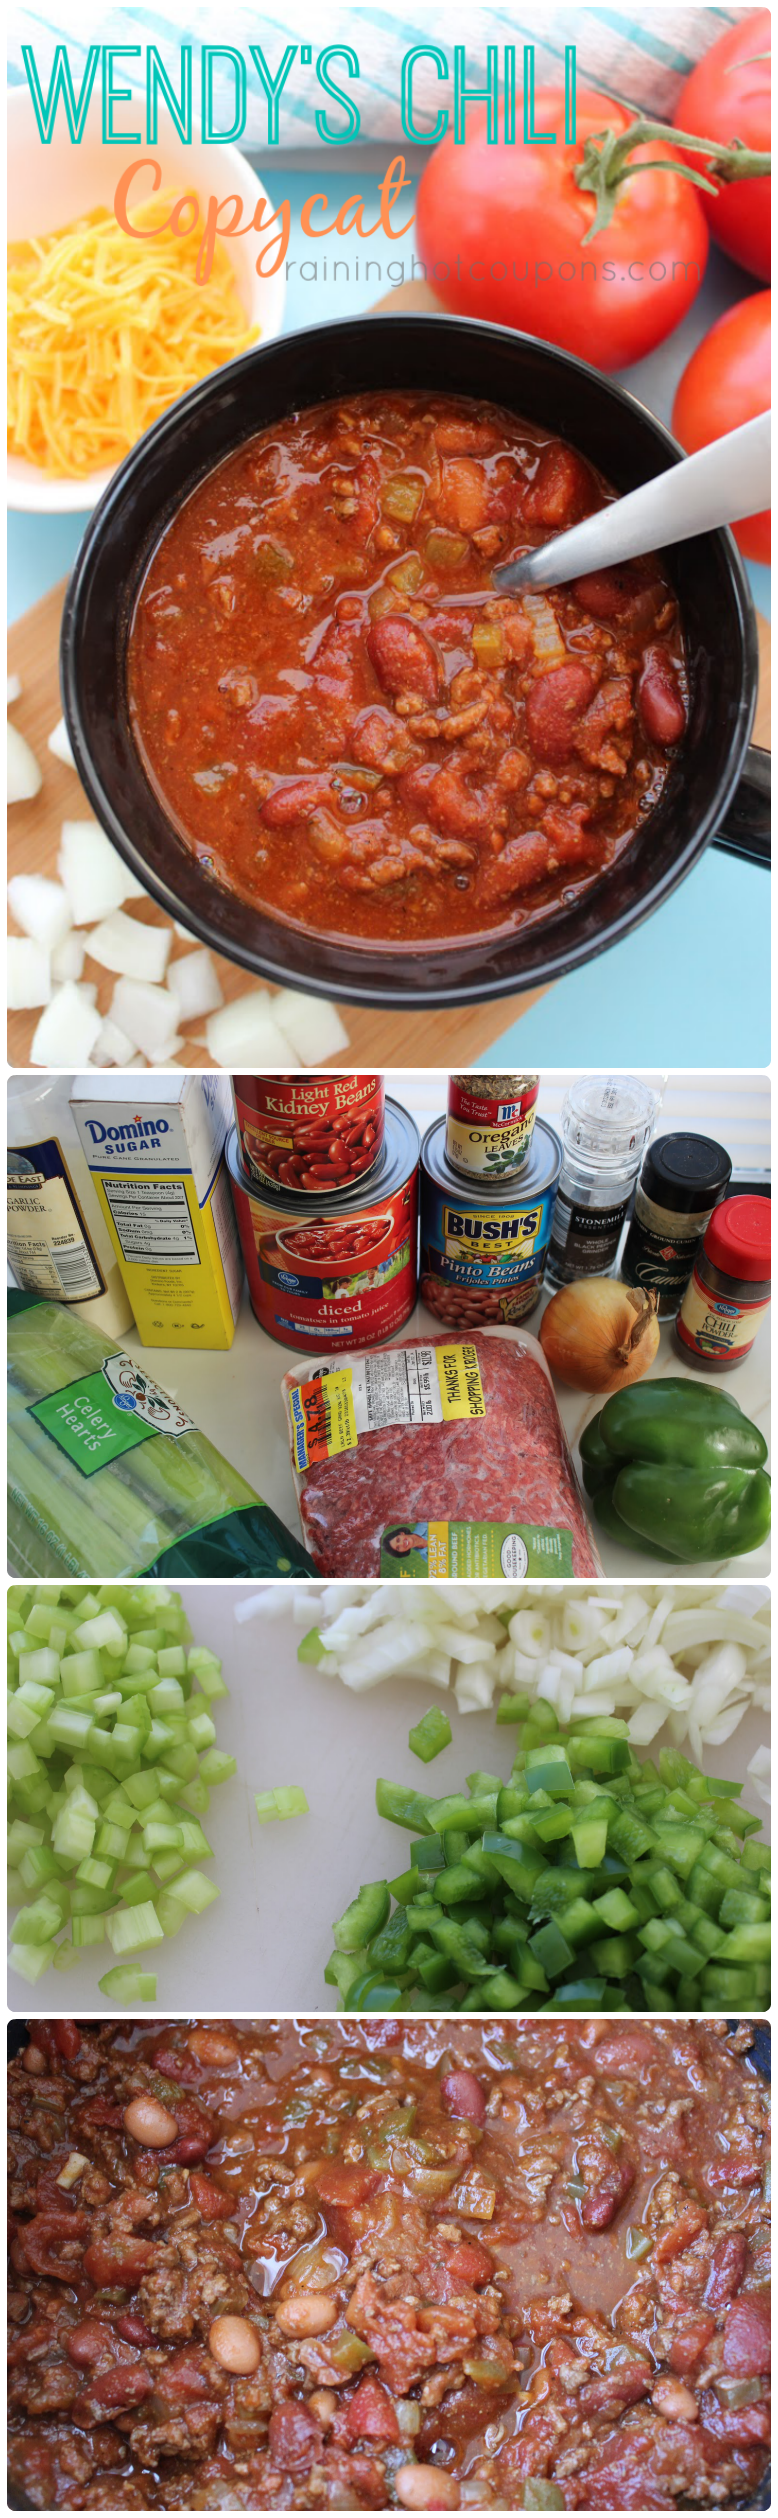 wendy's chili collage, copycat wendy's chili recipe, make Wendy's chili at home